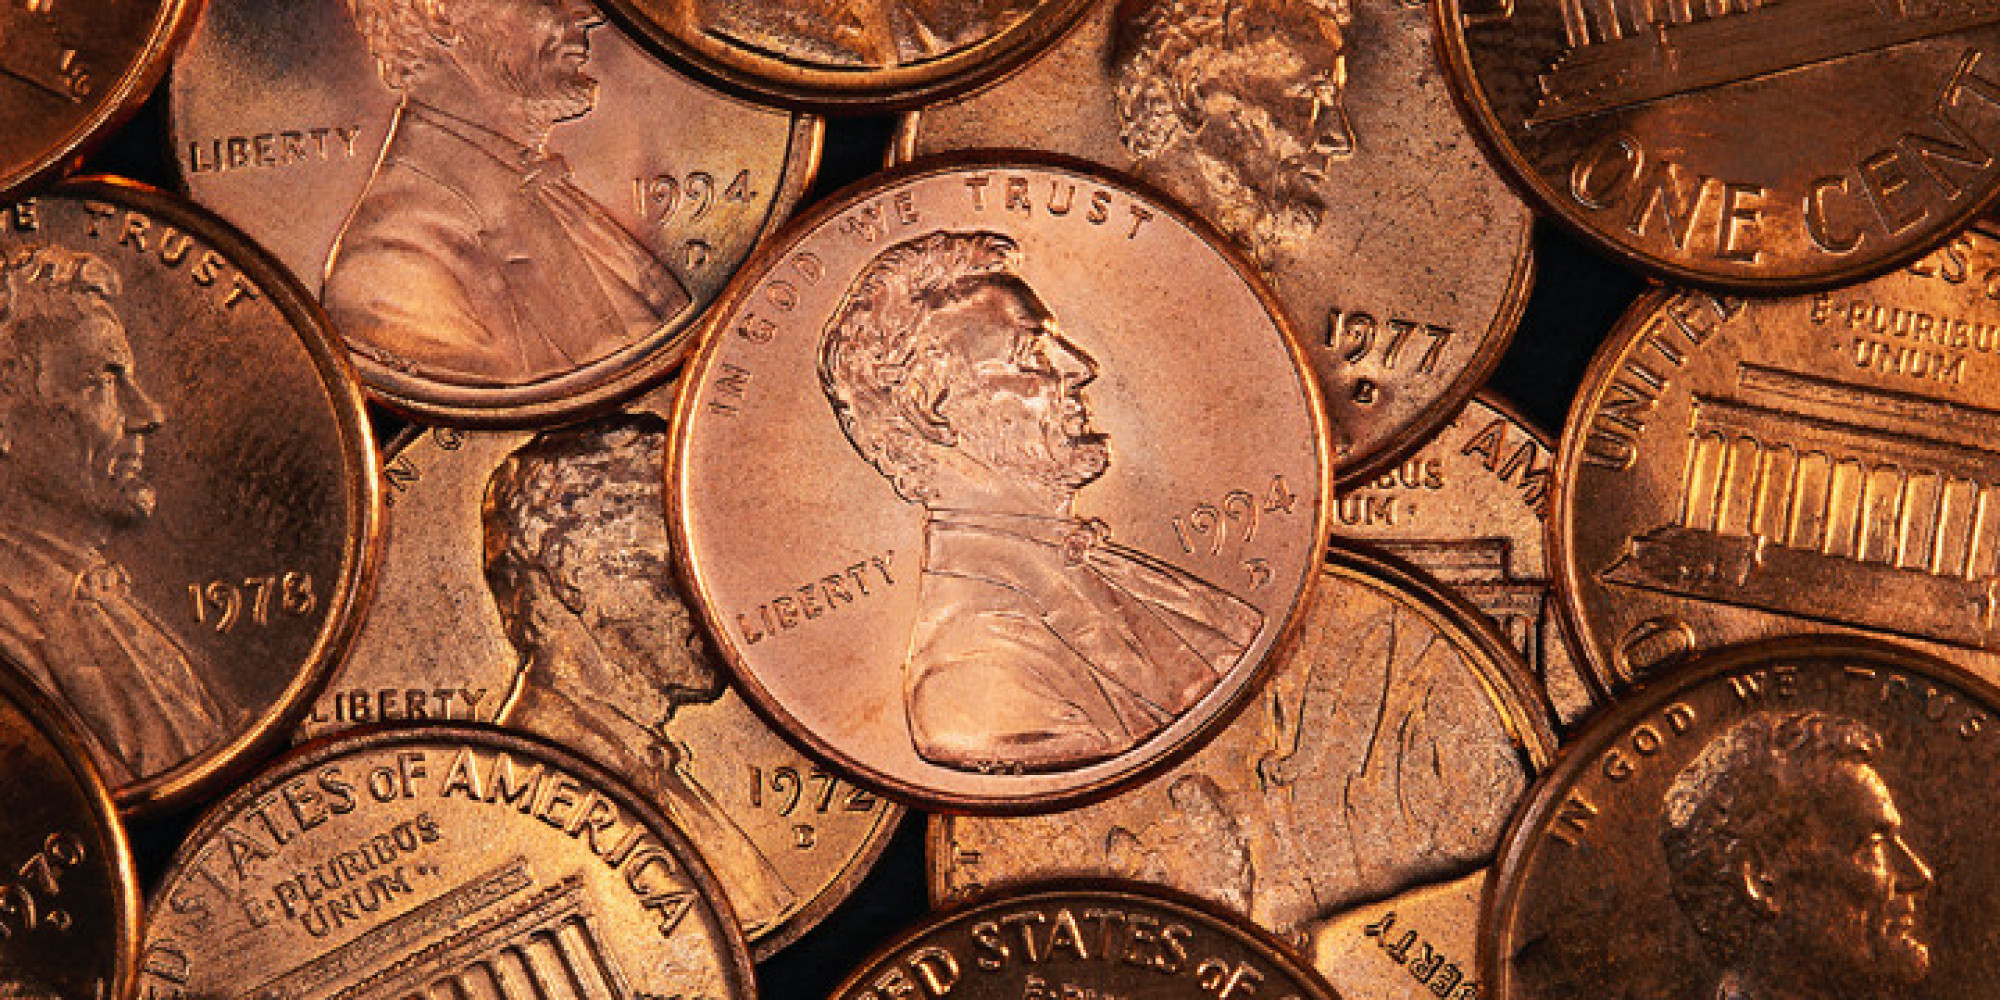 production of pennies 17 cents for your thoughts that's how much it costs to make a penny these days,  according to a new report to congress by the us mint.